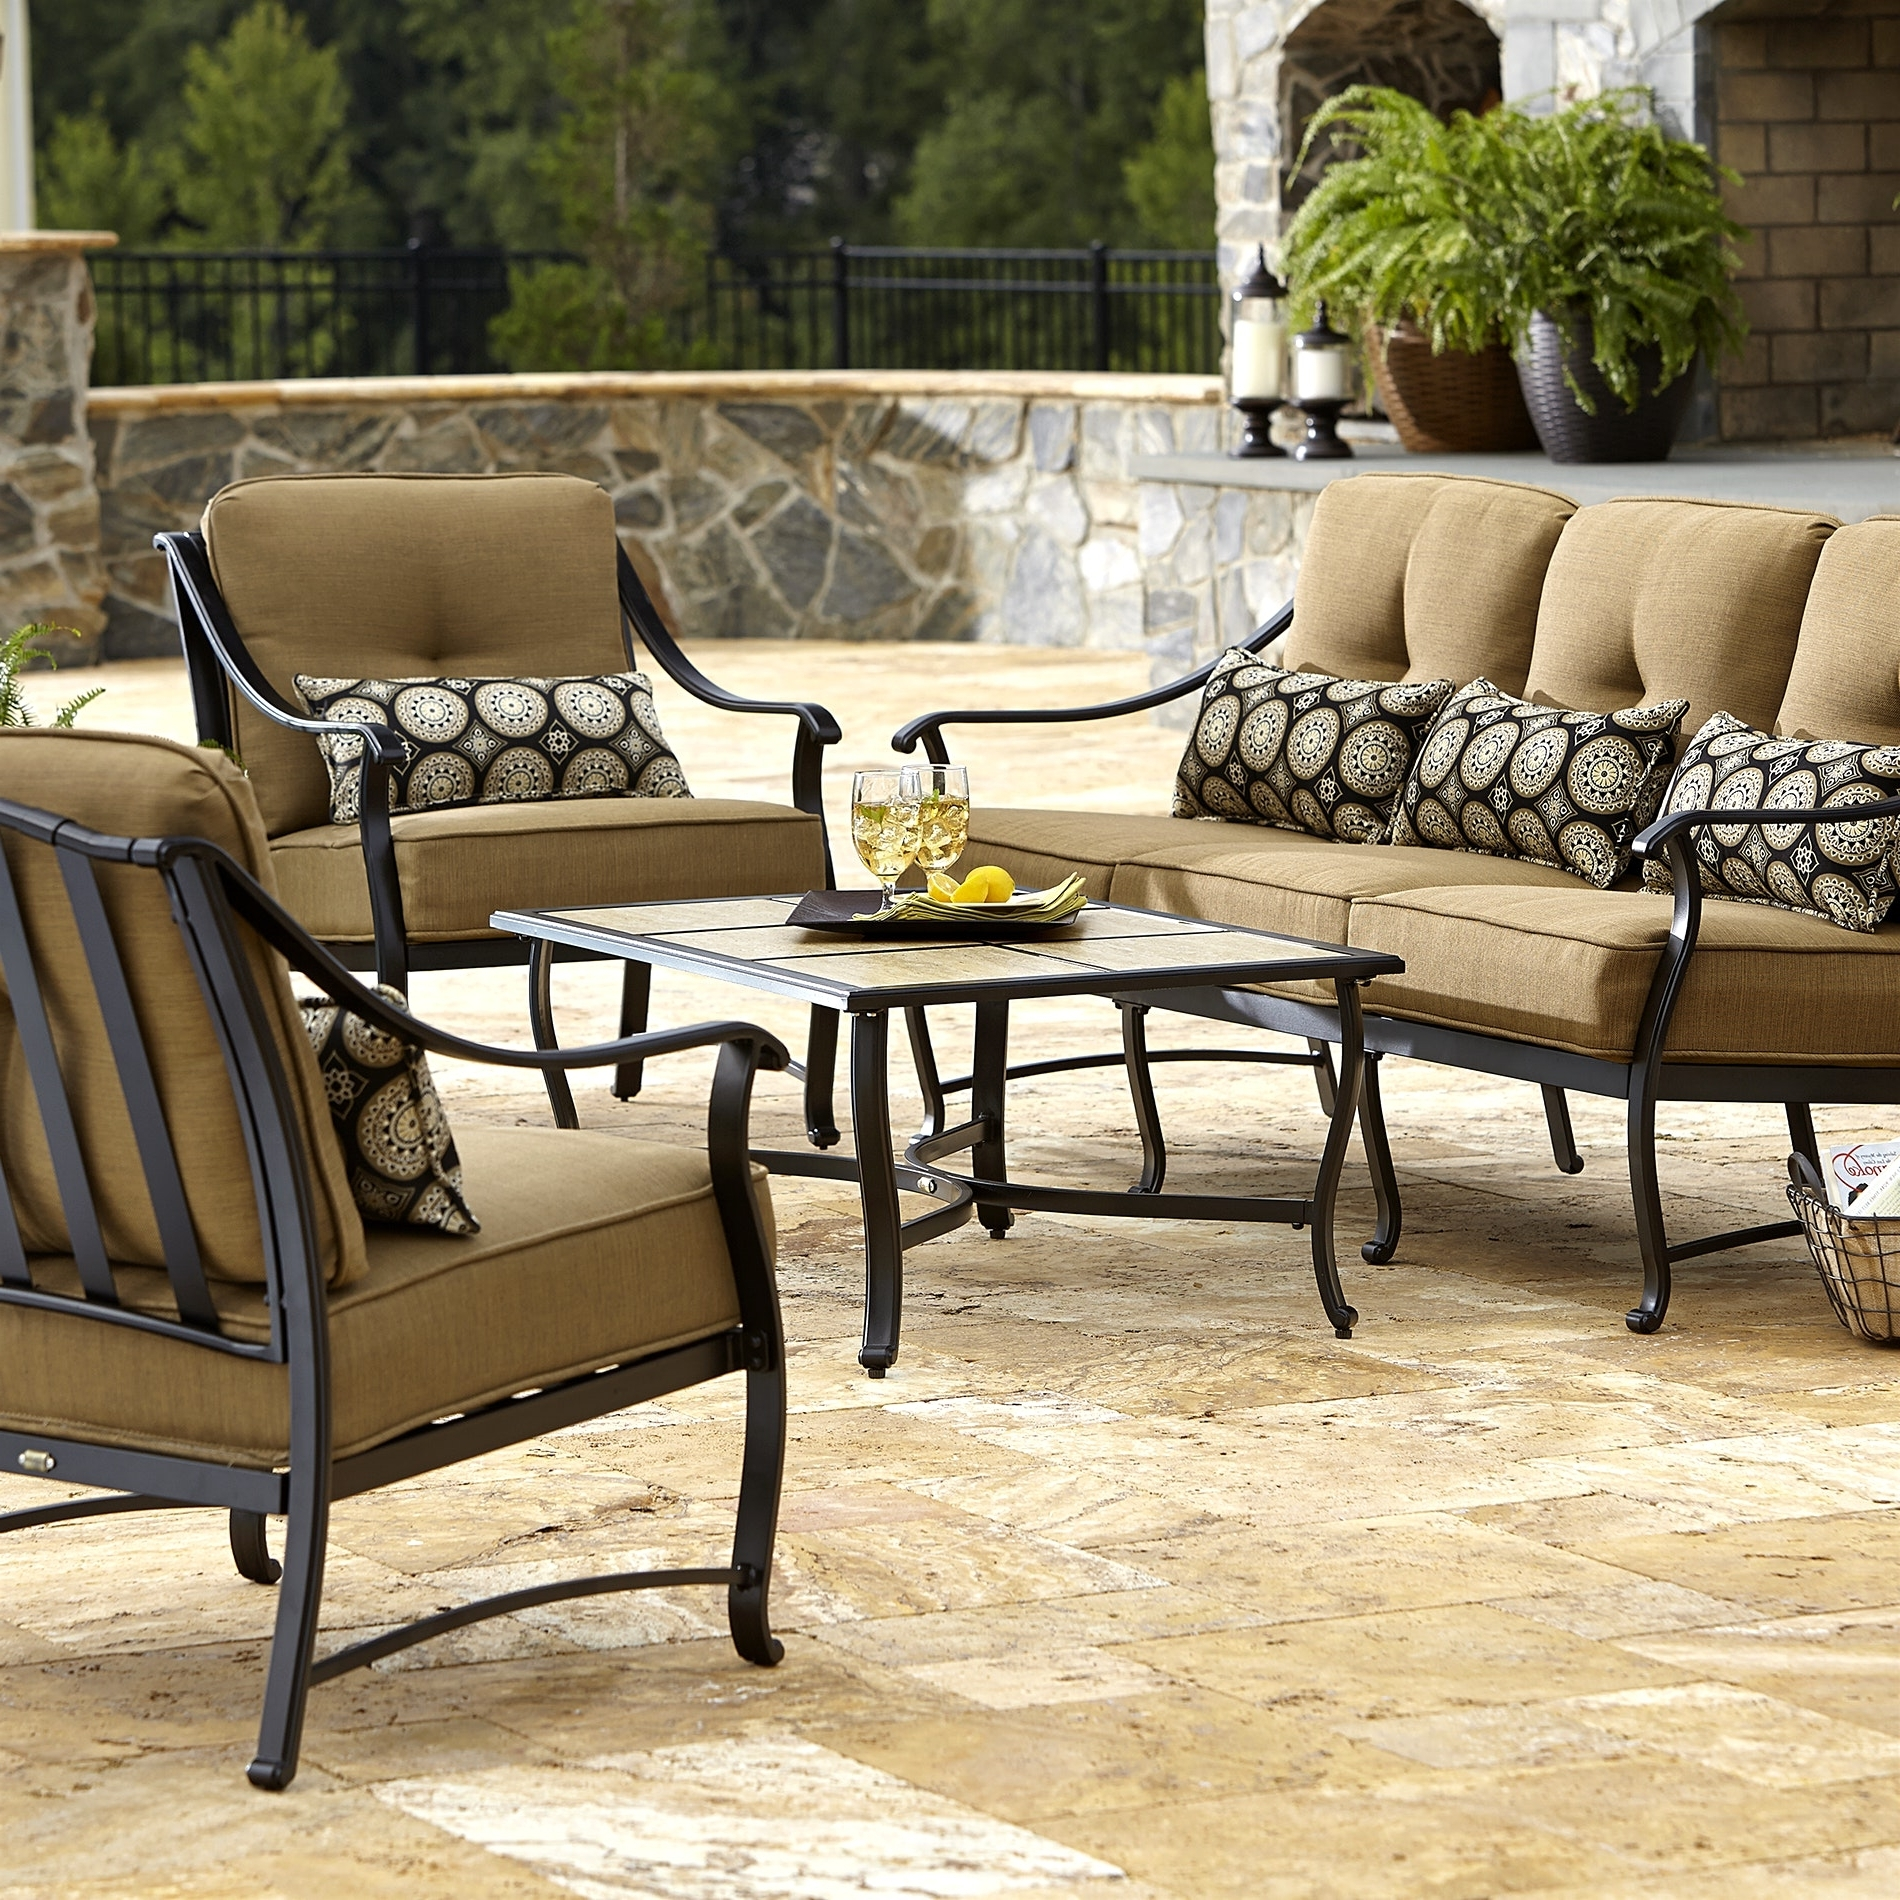 Patio Conversation Sets At Sears Regarding Most Popular 45 Sears Lazy Boy Patio Furniture, Lazy Boy Patio Furniturekbdphoto (View 17 of 20)